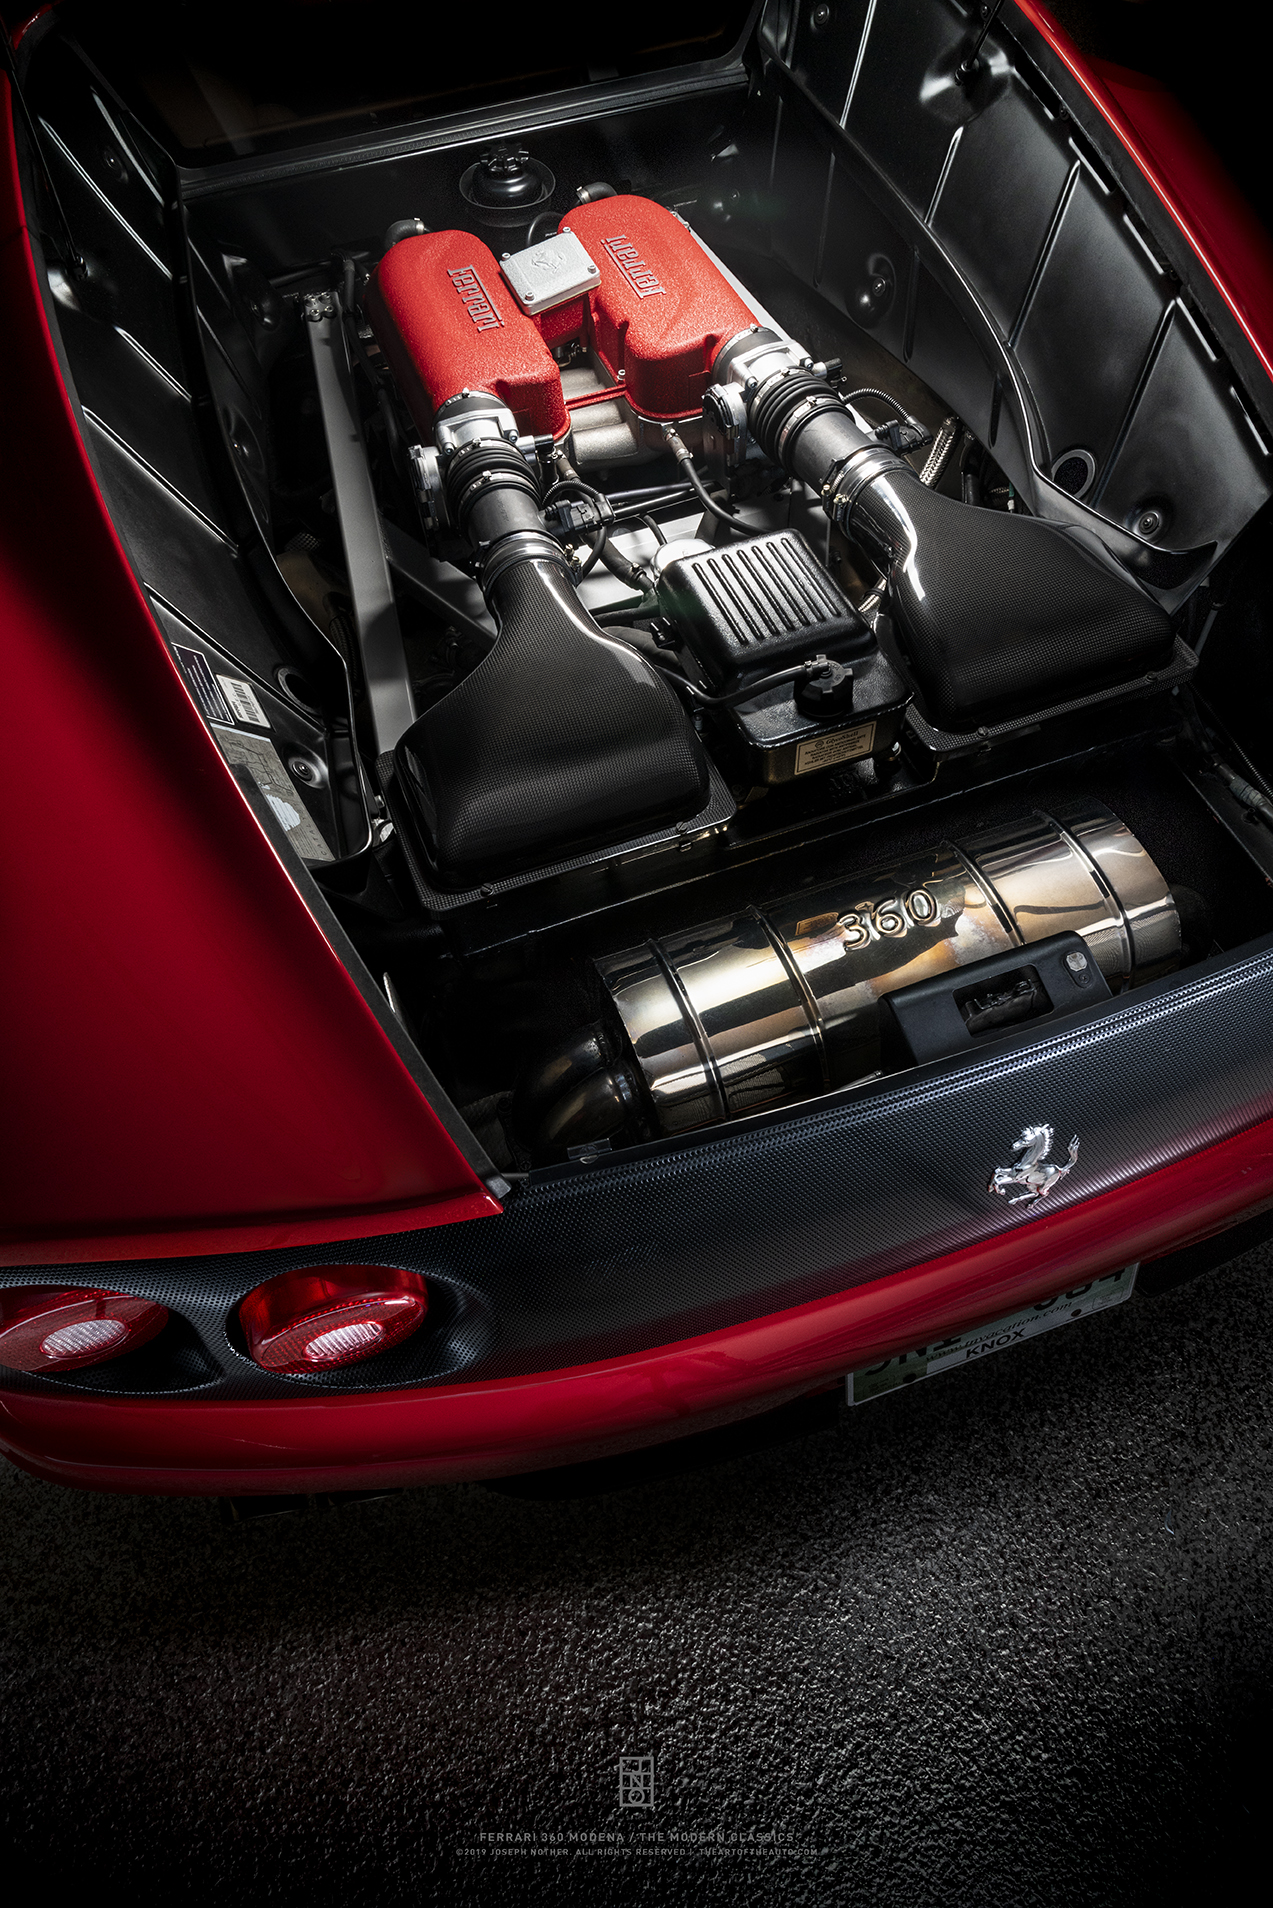 Ferrari 360 Modena The V8 Engine Vertical Limited Edition Joseph Nother